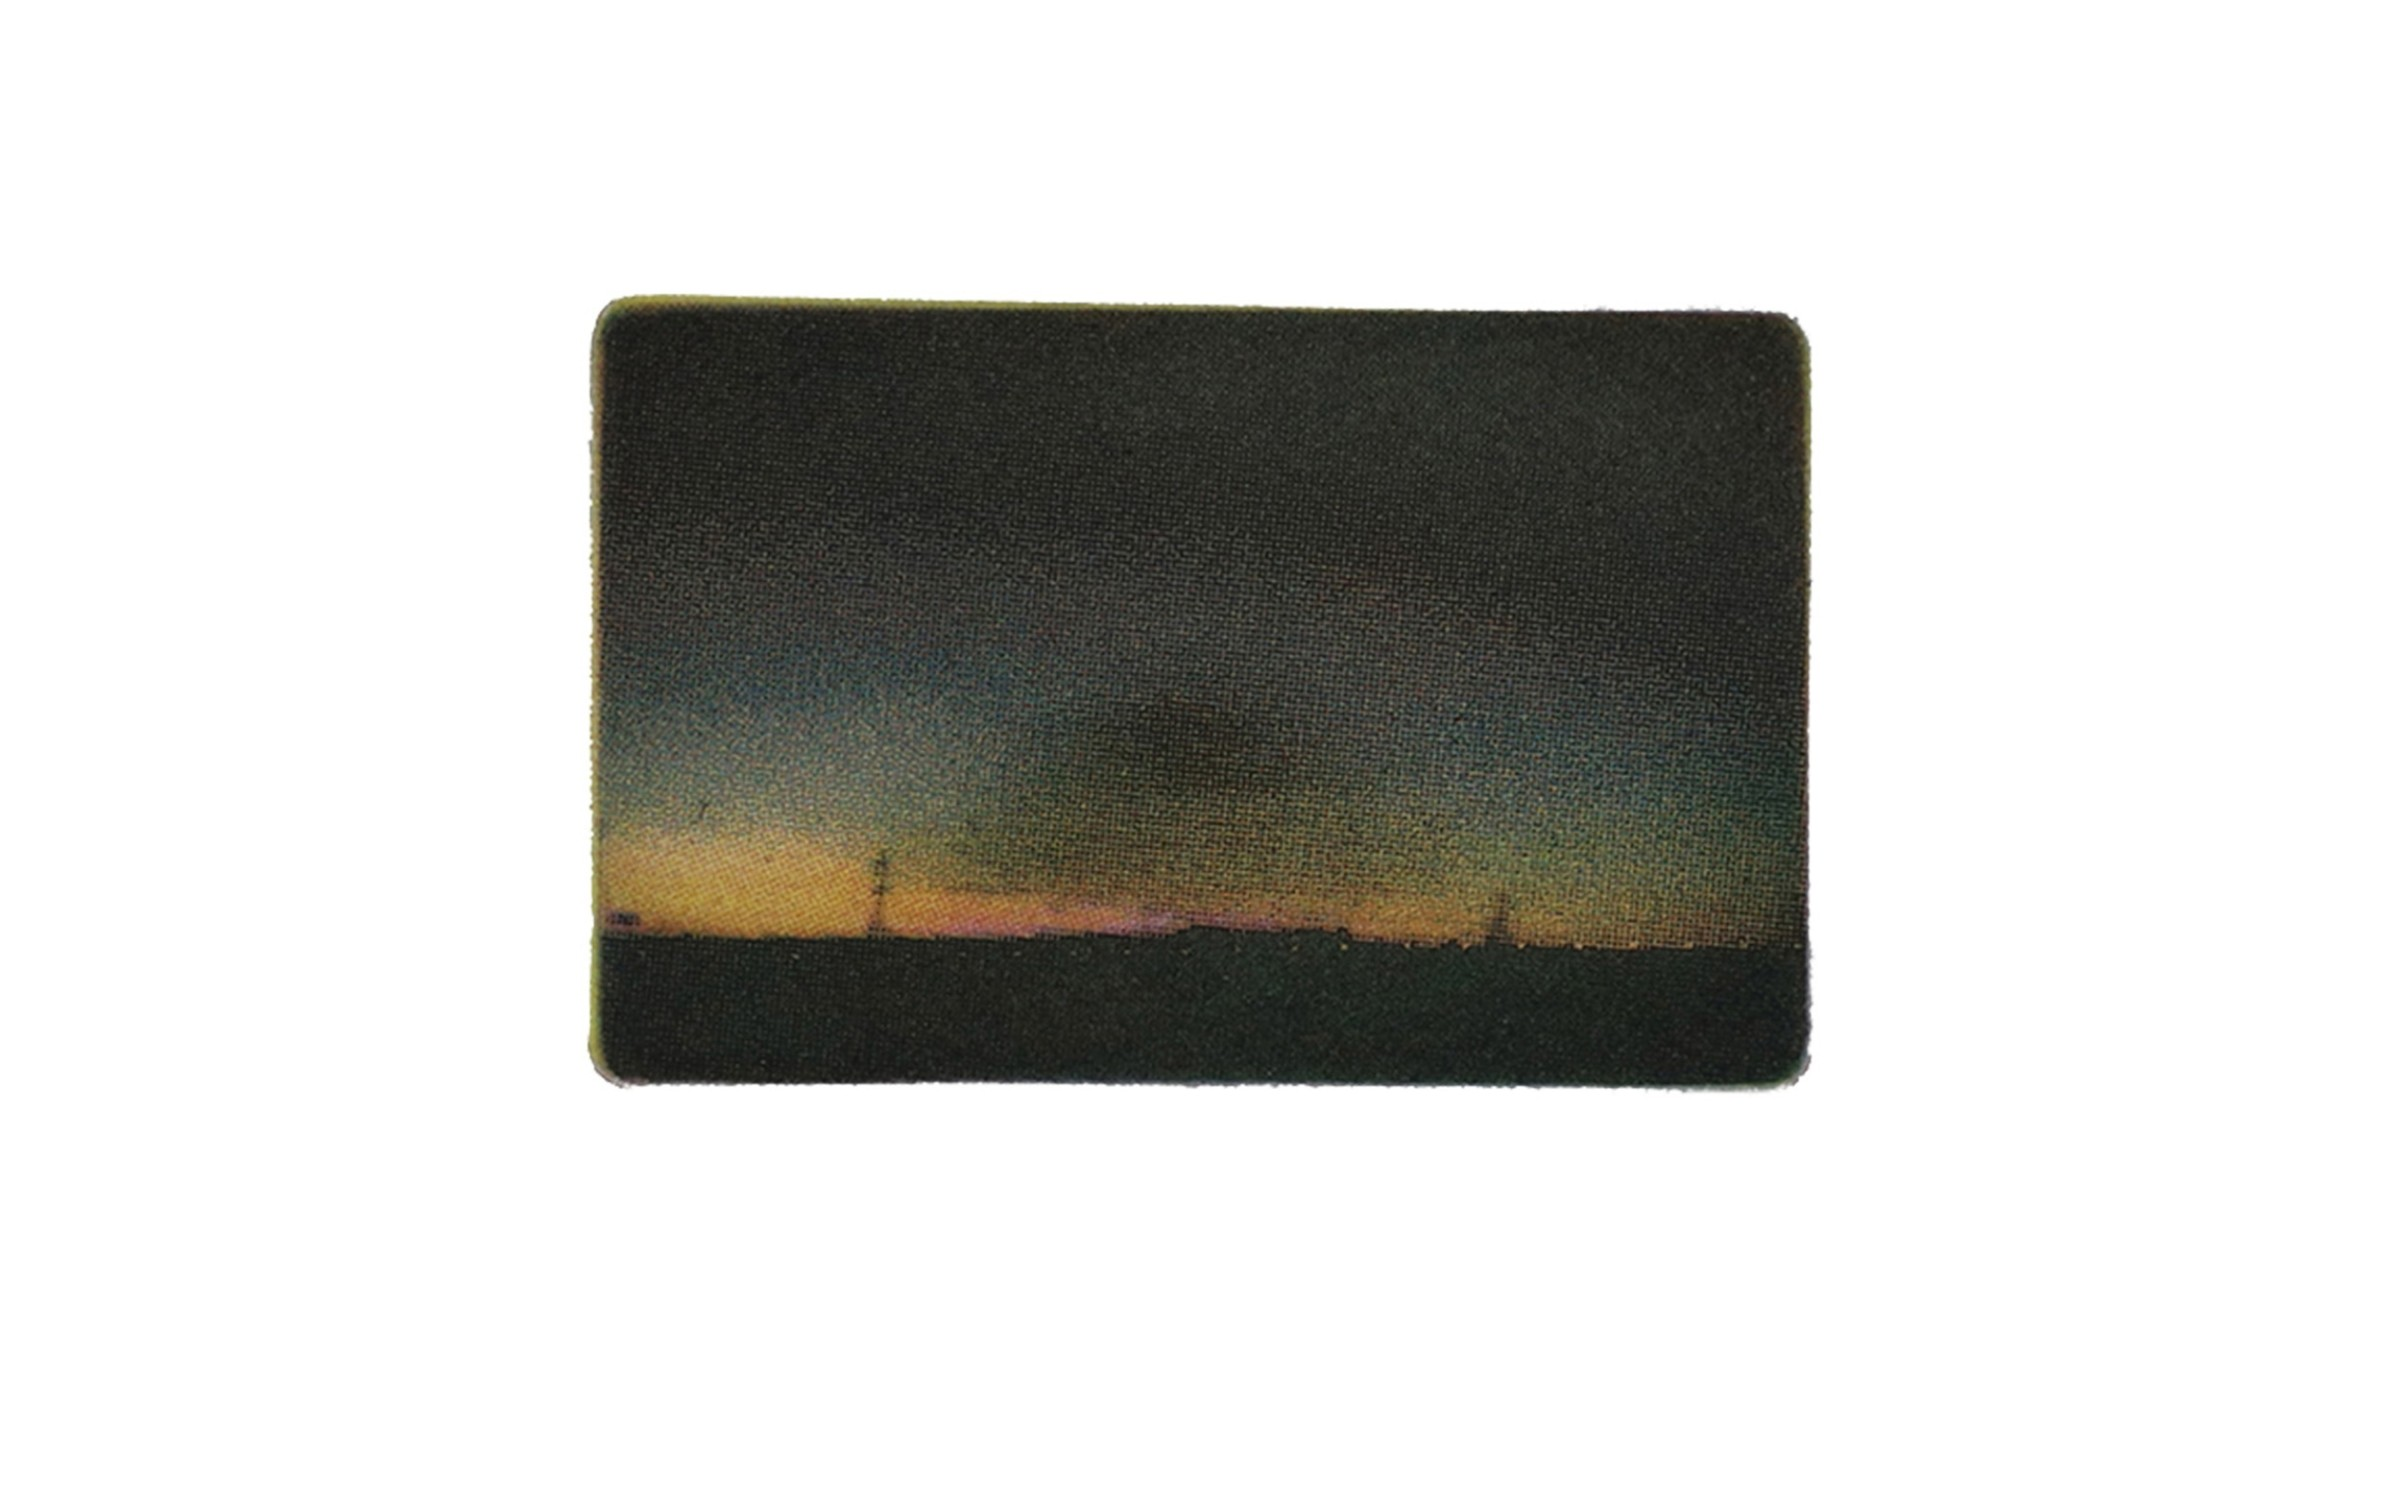 """<span class=""""link fancybox-details-link""""><a href=""""/exhibitions/17/works/image_standalone642/"""">View Detail Page</a></span><p><strong>Lisa Chappell</strong></p><p>In Between</p><p>photo etching</p><p>33 x 24cm</p><p>£200 framed</p><p>£150 unframed</p>"""